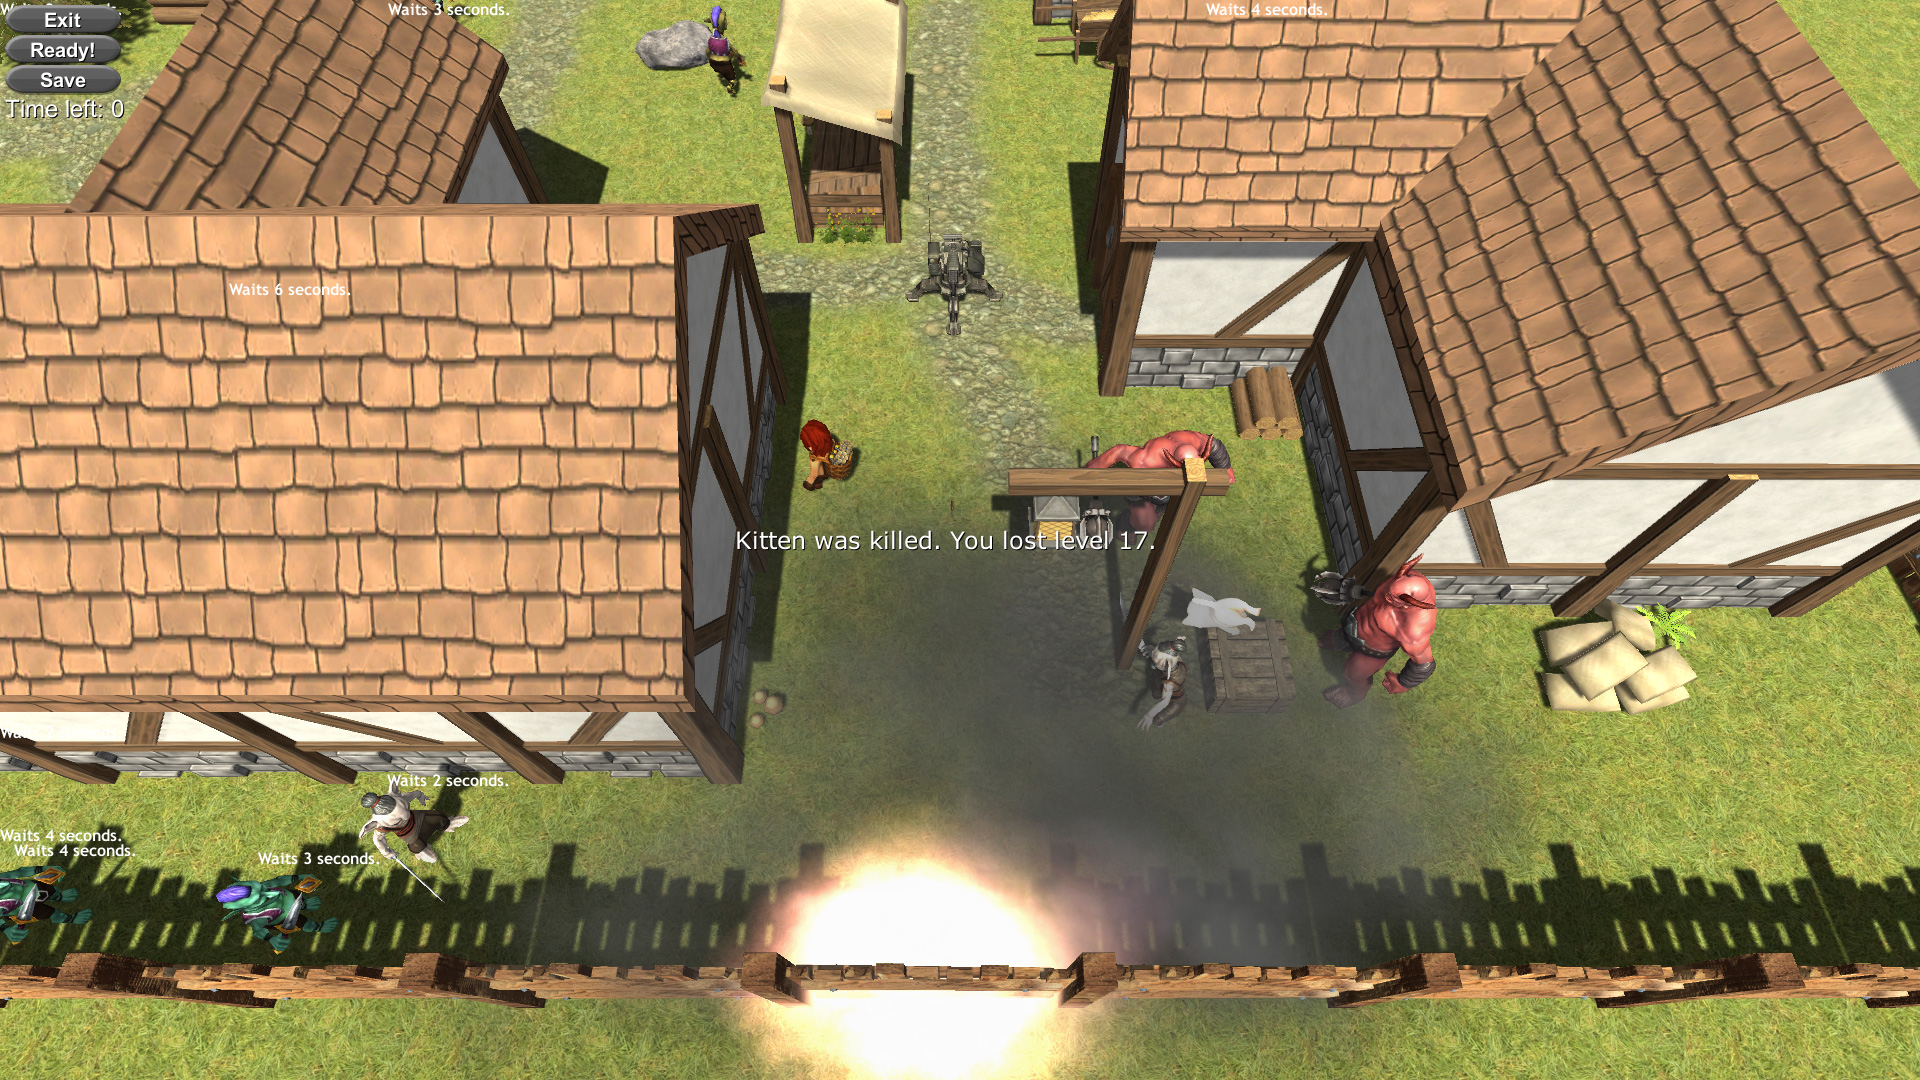 Download strategy games rpg games at mitorah games winlinuxmac altavistaventures Image collections